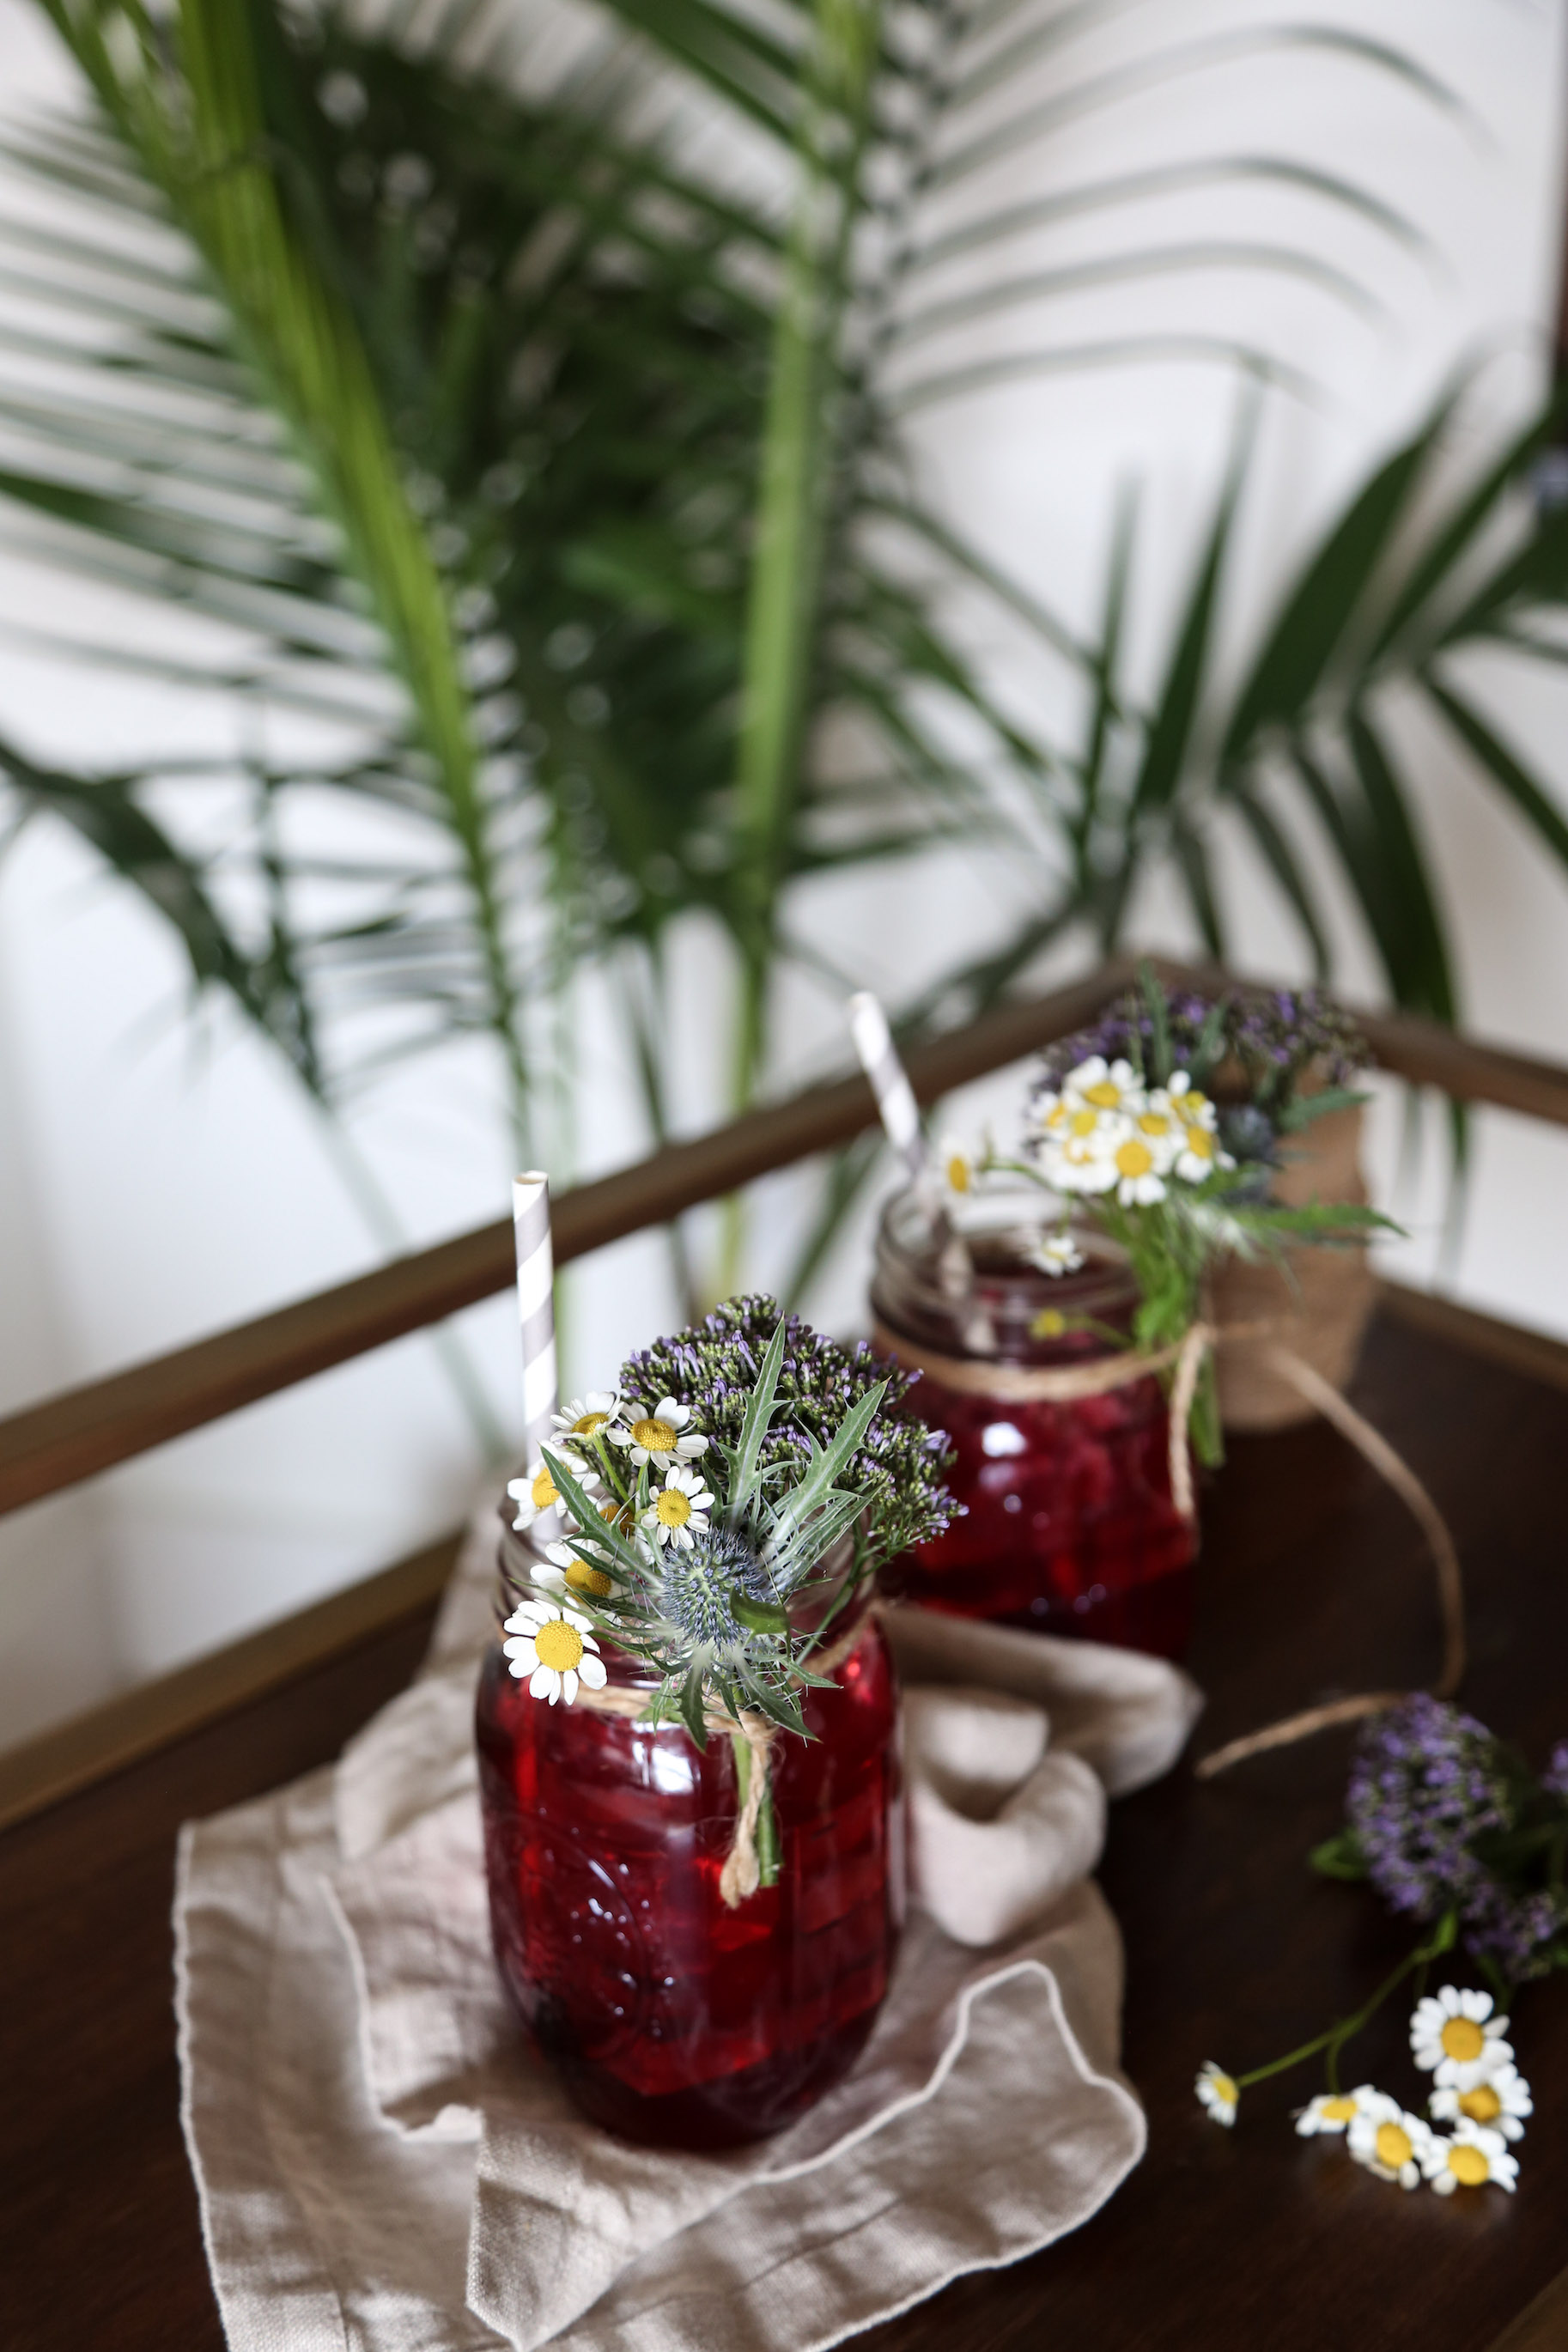 cocktails garnished with flowers2.jpg